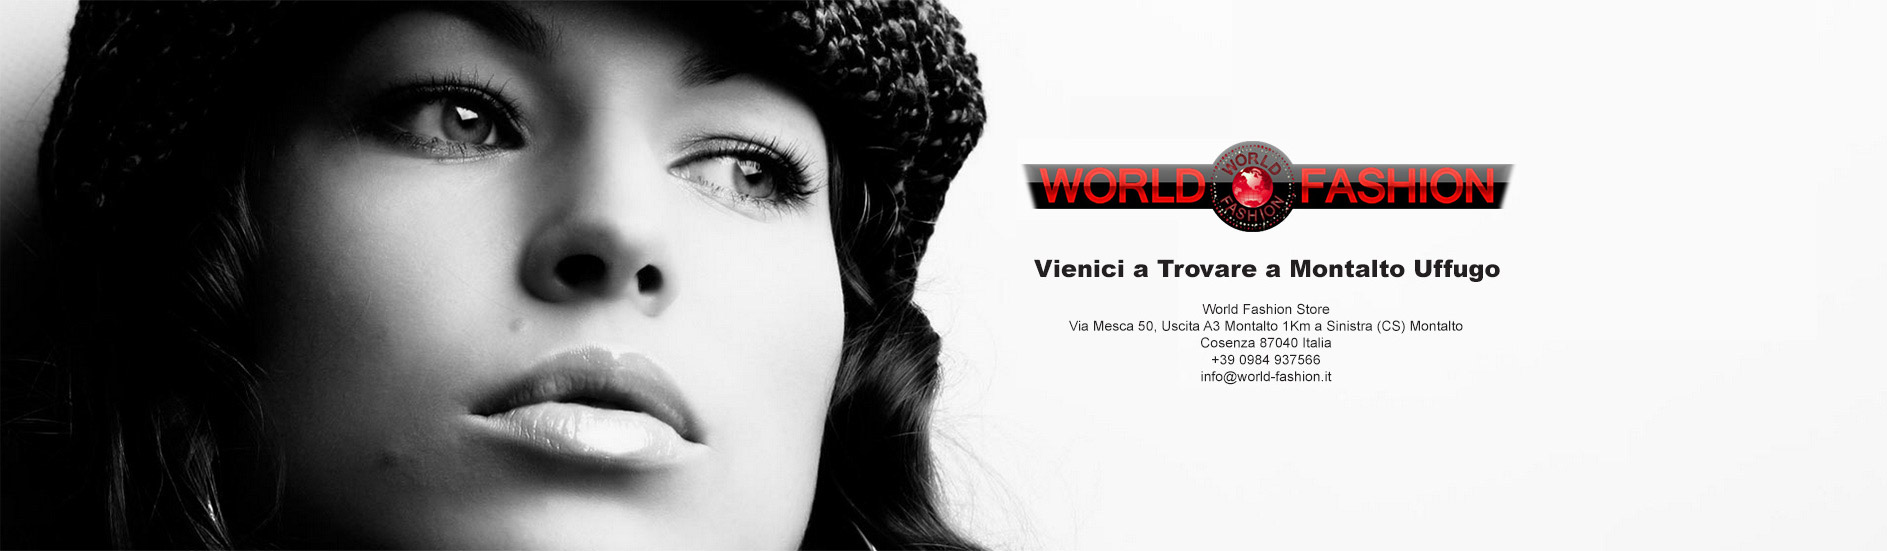 world-fashion-vienici-a-trovare